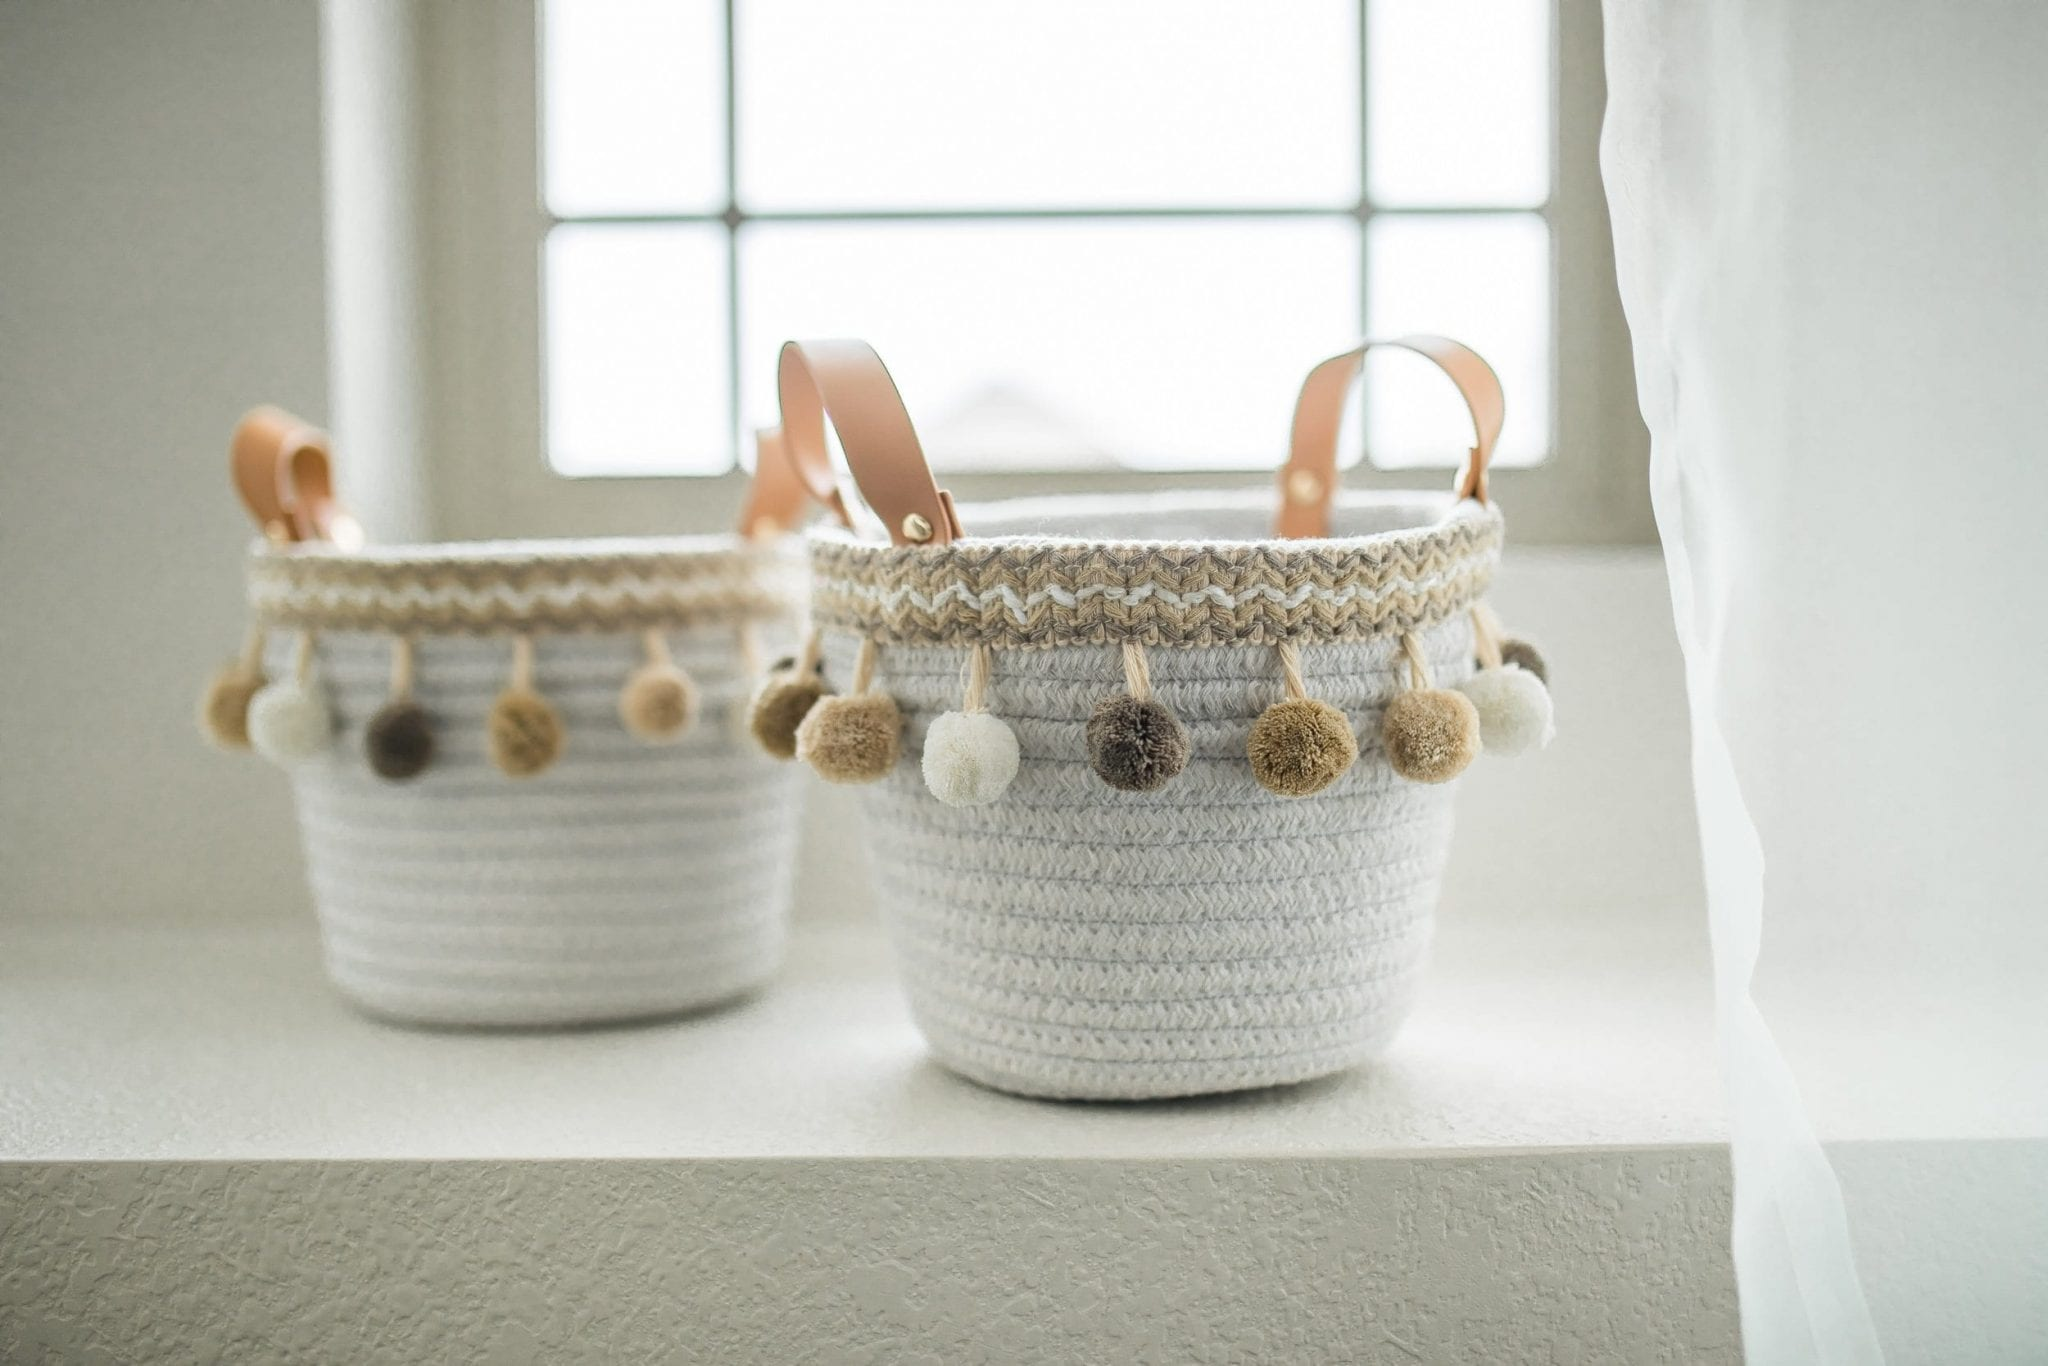 basket organization ideas | basket organization tips | baskets for home decor | basket decor diy | basket decor ideas | Never Skip Brunch by Cara Newhart | #decor #diy #basket #neverskipbrunch